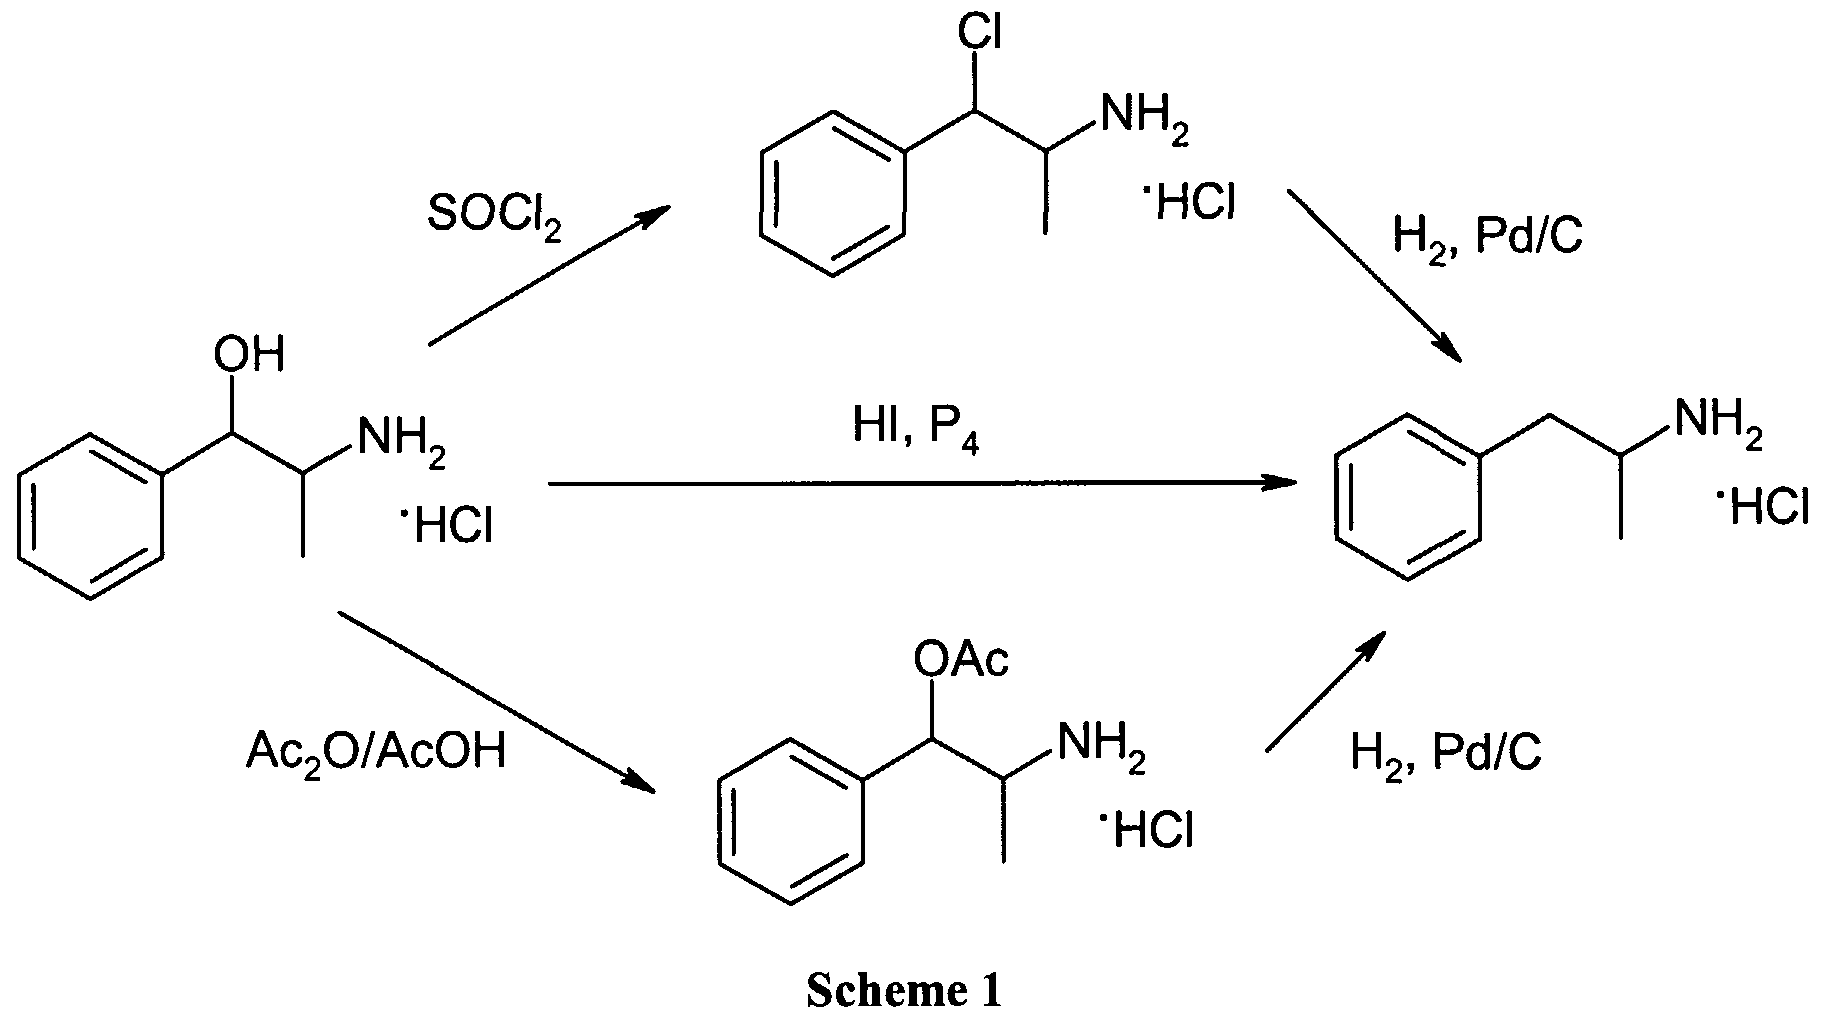 meth systhesis Synthesis of n-methylamphetamine the figure shows the synthesis route for  meth that is probably used in breaking bad standard synthesis.